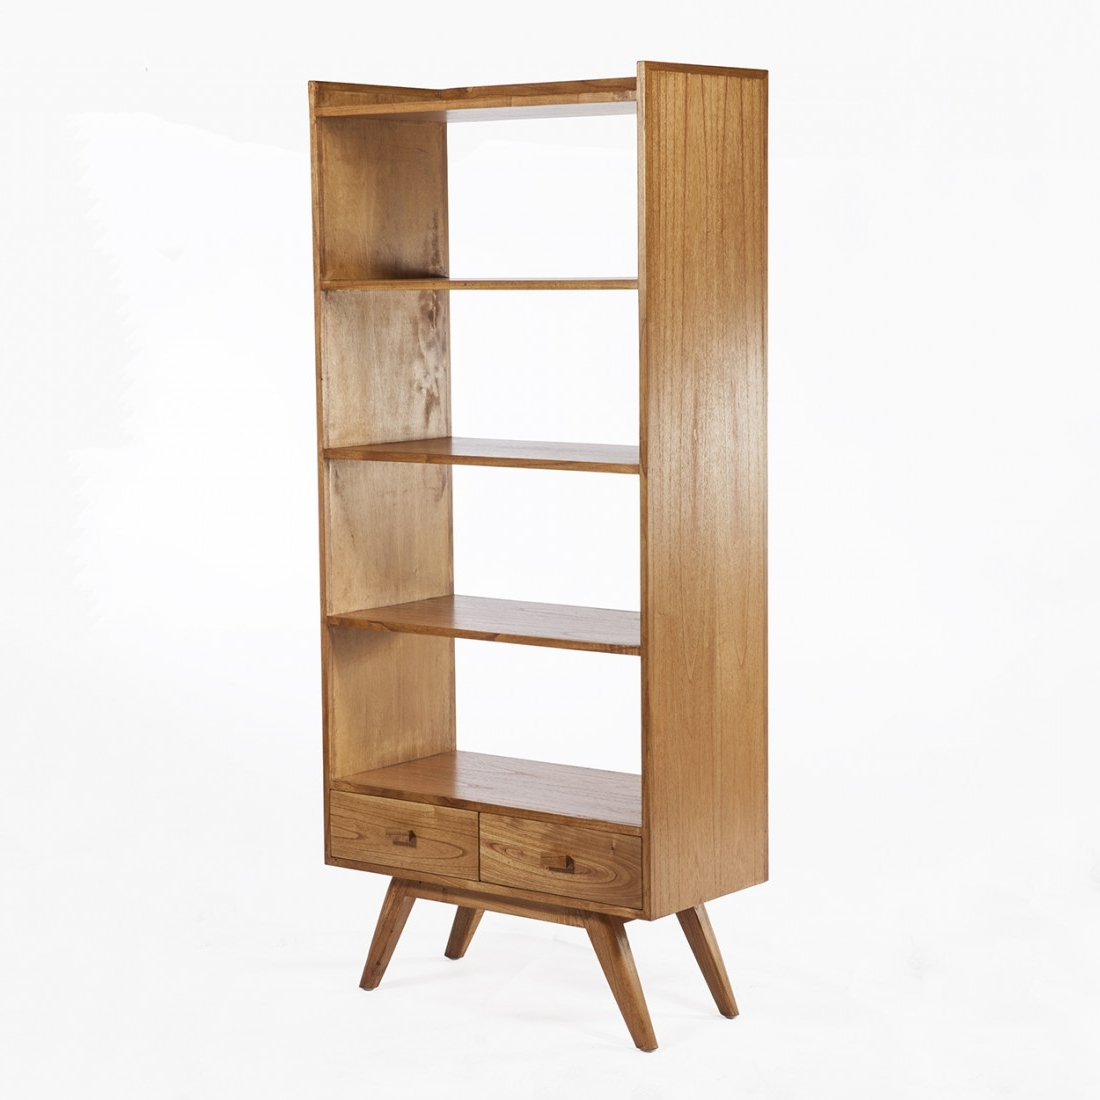 Alluring Most Up To Date Midcentury Bookcases Mid Century Bookcase Uk Mid Century Bookcase Melbourne 2 Furniture Mid Century Tall 4 Tier Shelving Bookcase baby Mid Century Bookcase